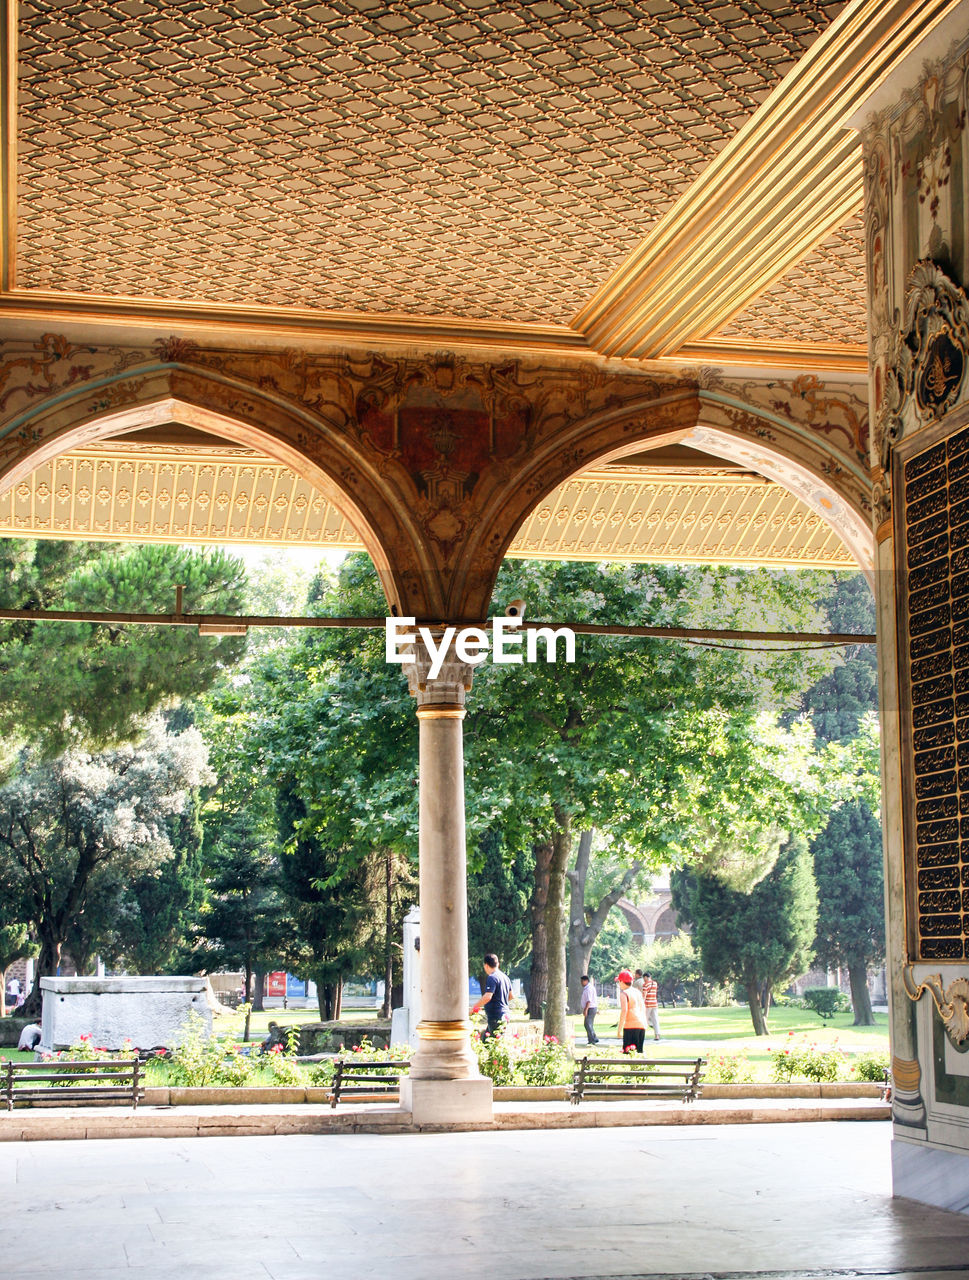 architecture, built structure, arch, architectural column, plant, incidental people, tree, building exterior, day, nature, building, the past, history, travel destinations, outdoors, sunlight, travel, arcade, tourism, in a row, colonnade, courtyard